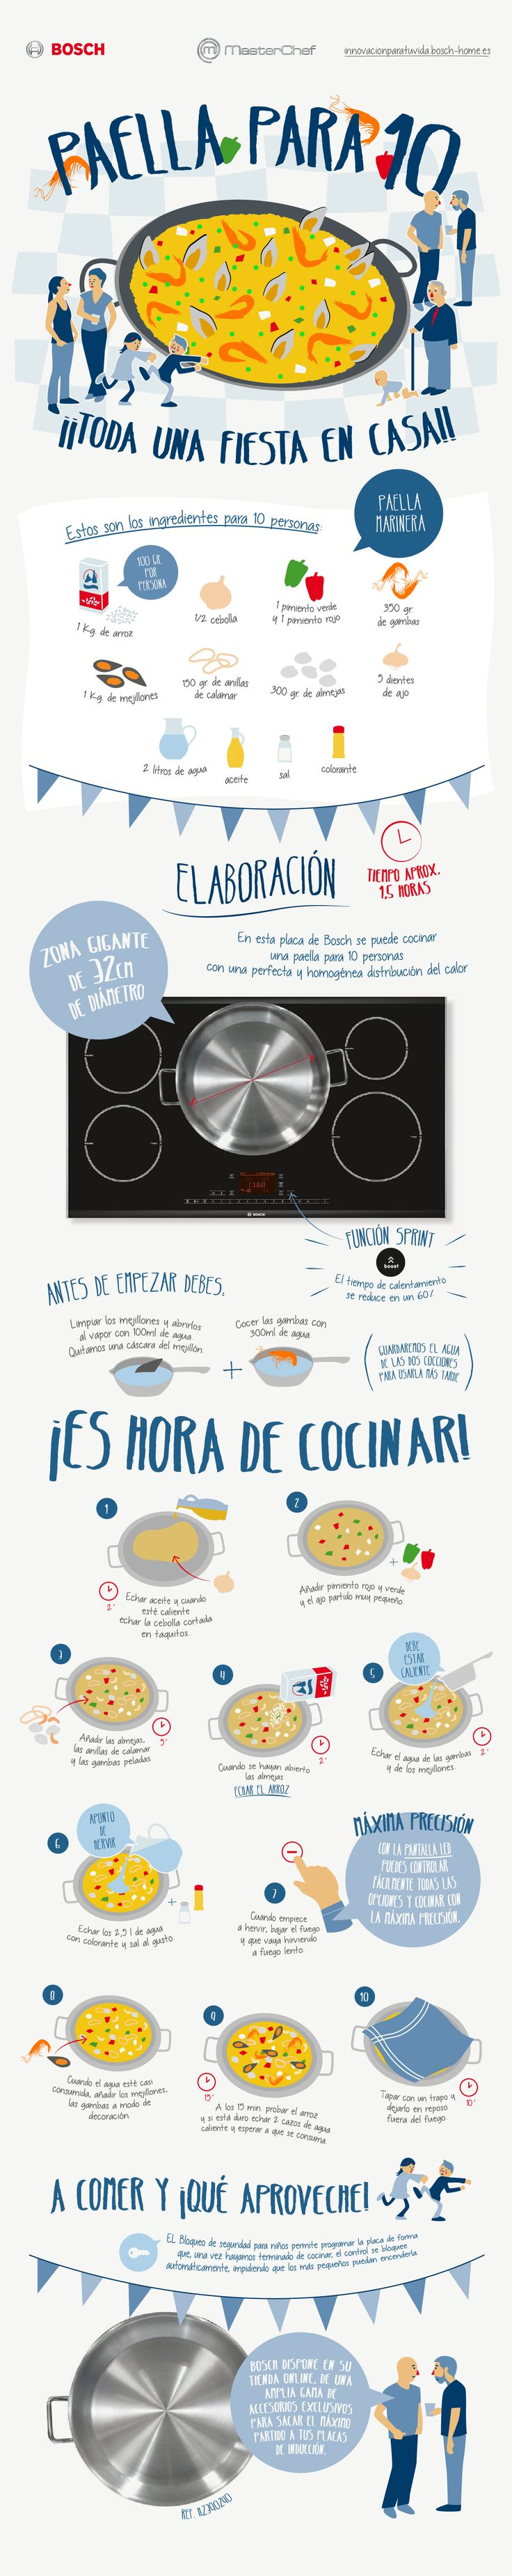 infografias en castellano: great website for these kinds of graphics for discussion